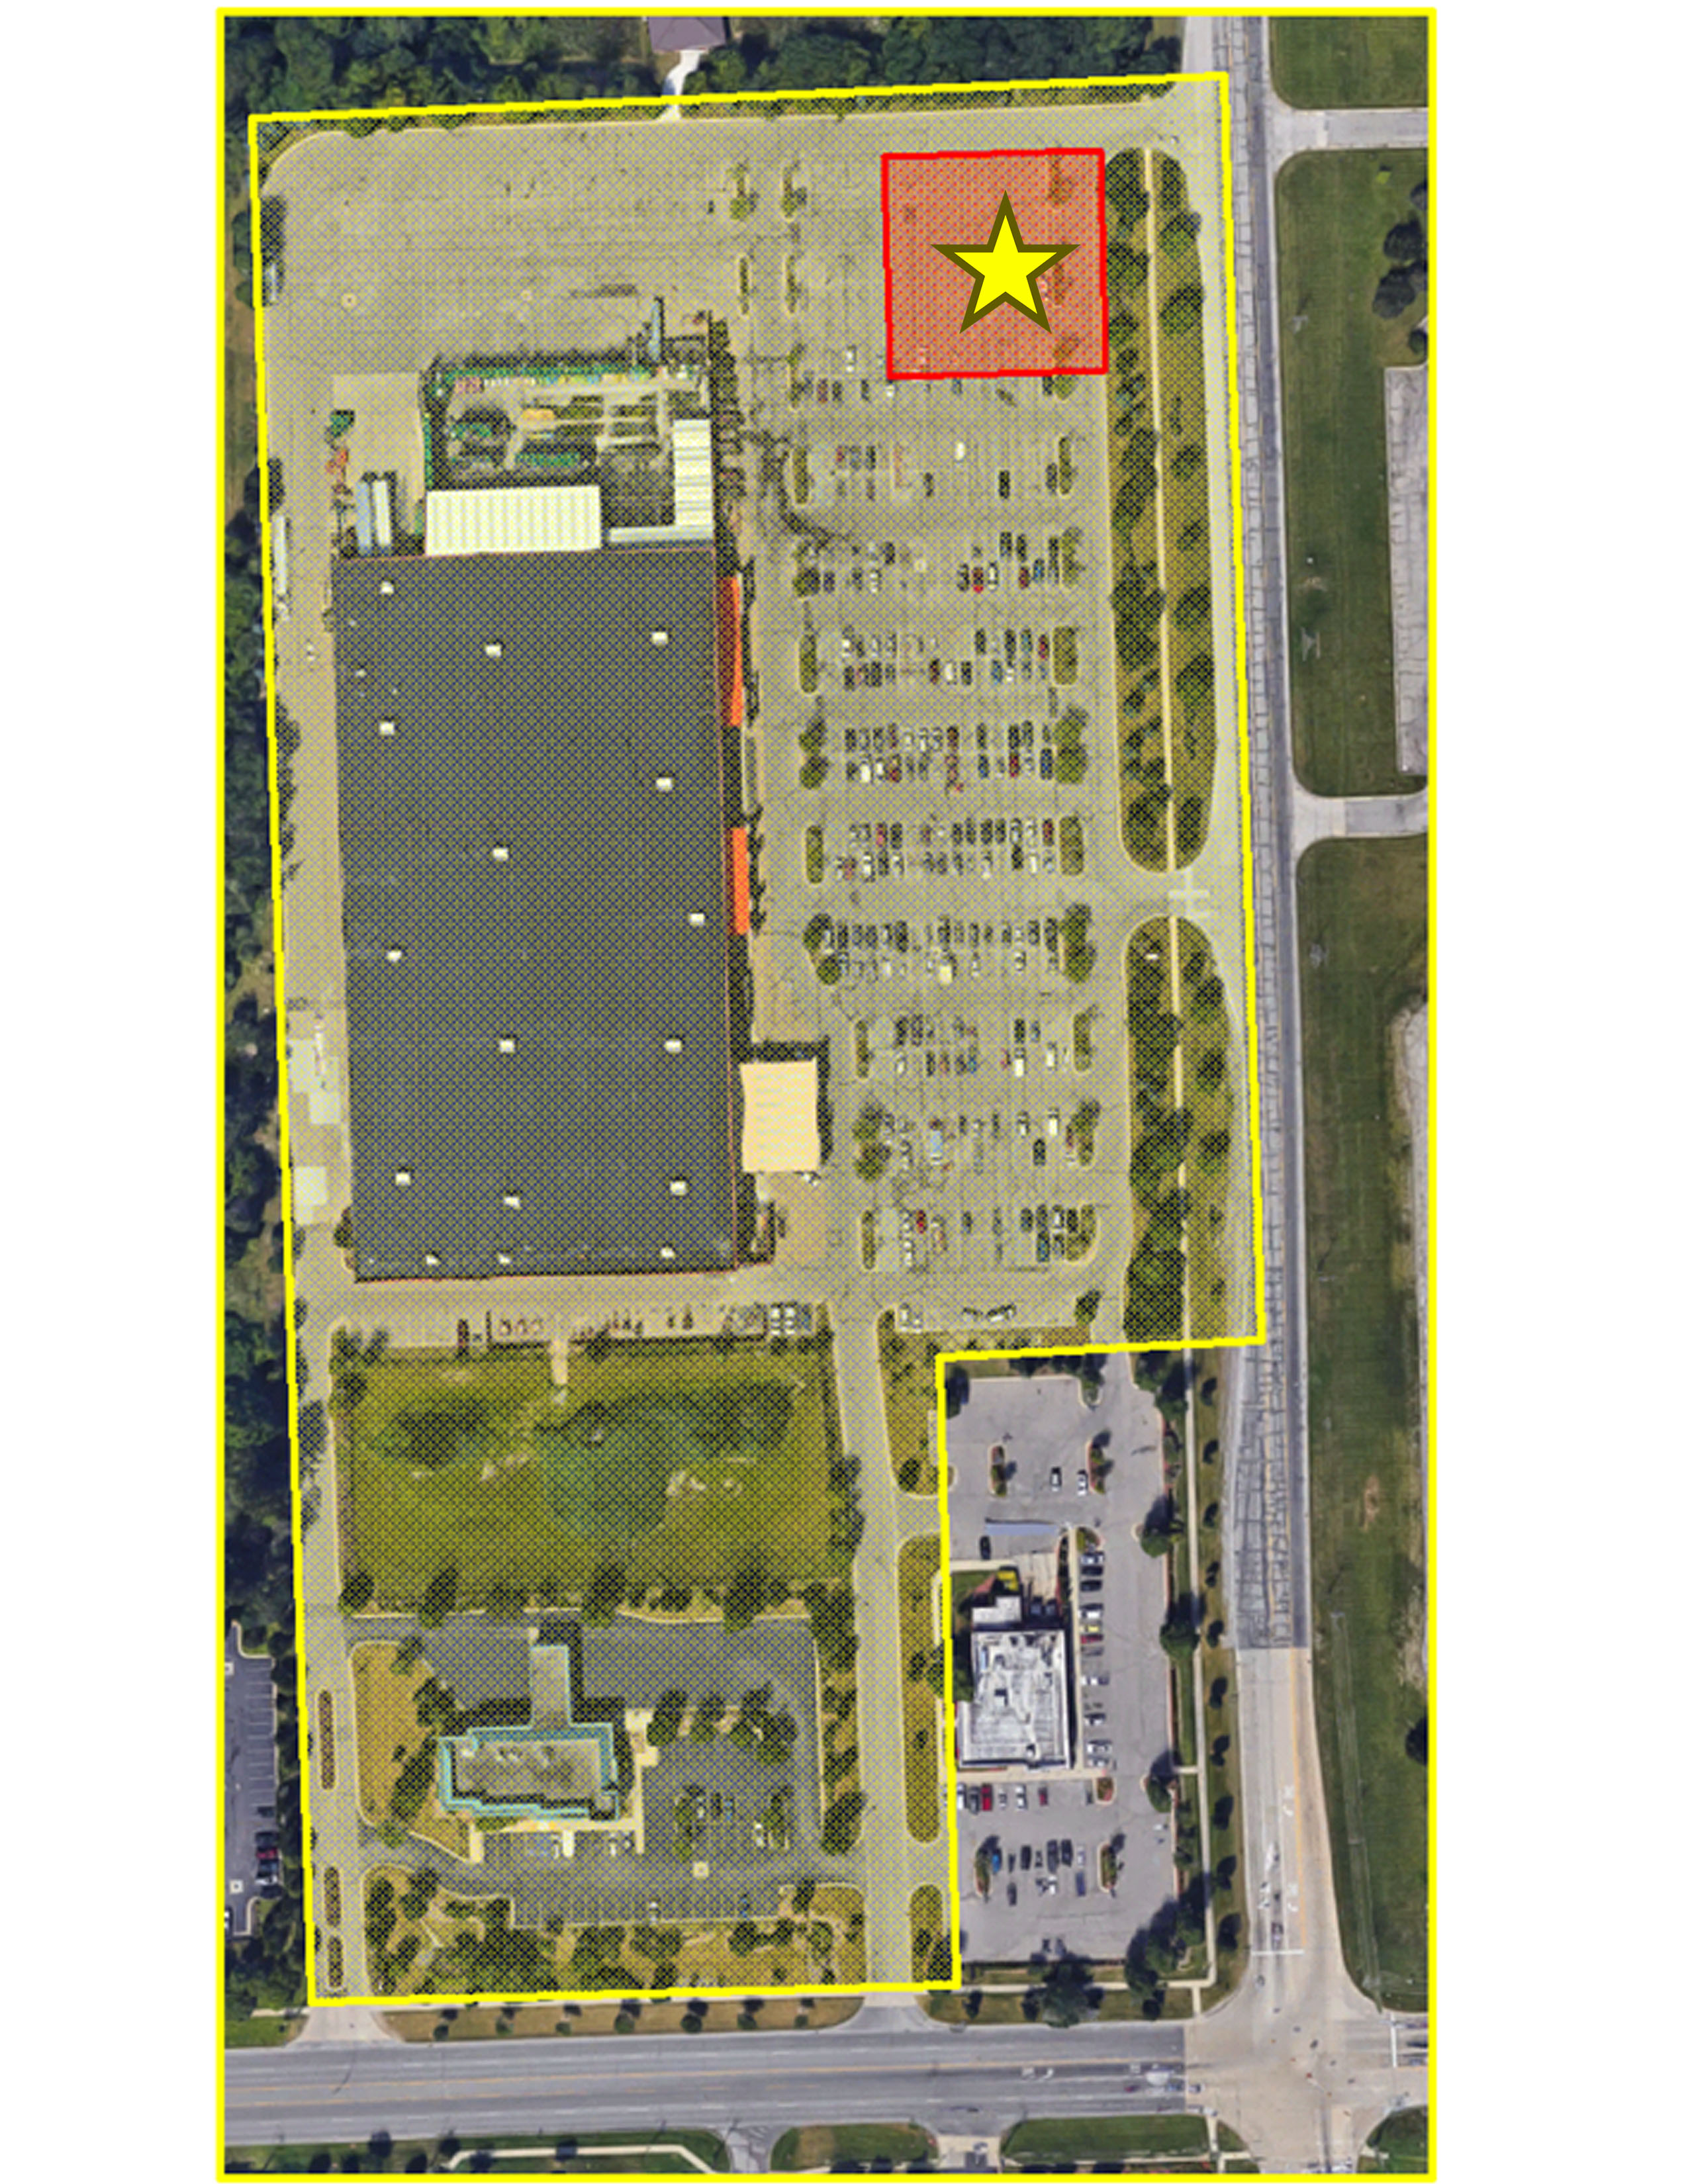 47725 5 Mile Rd., Plymouth Township, Michigan 48170, ,Retail,For Sale,47725 5 Mile Rd.,1063